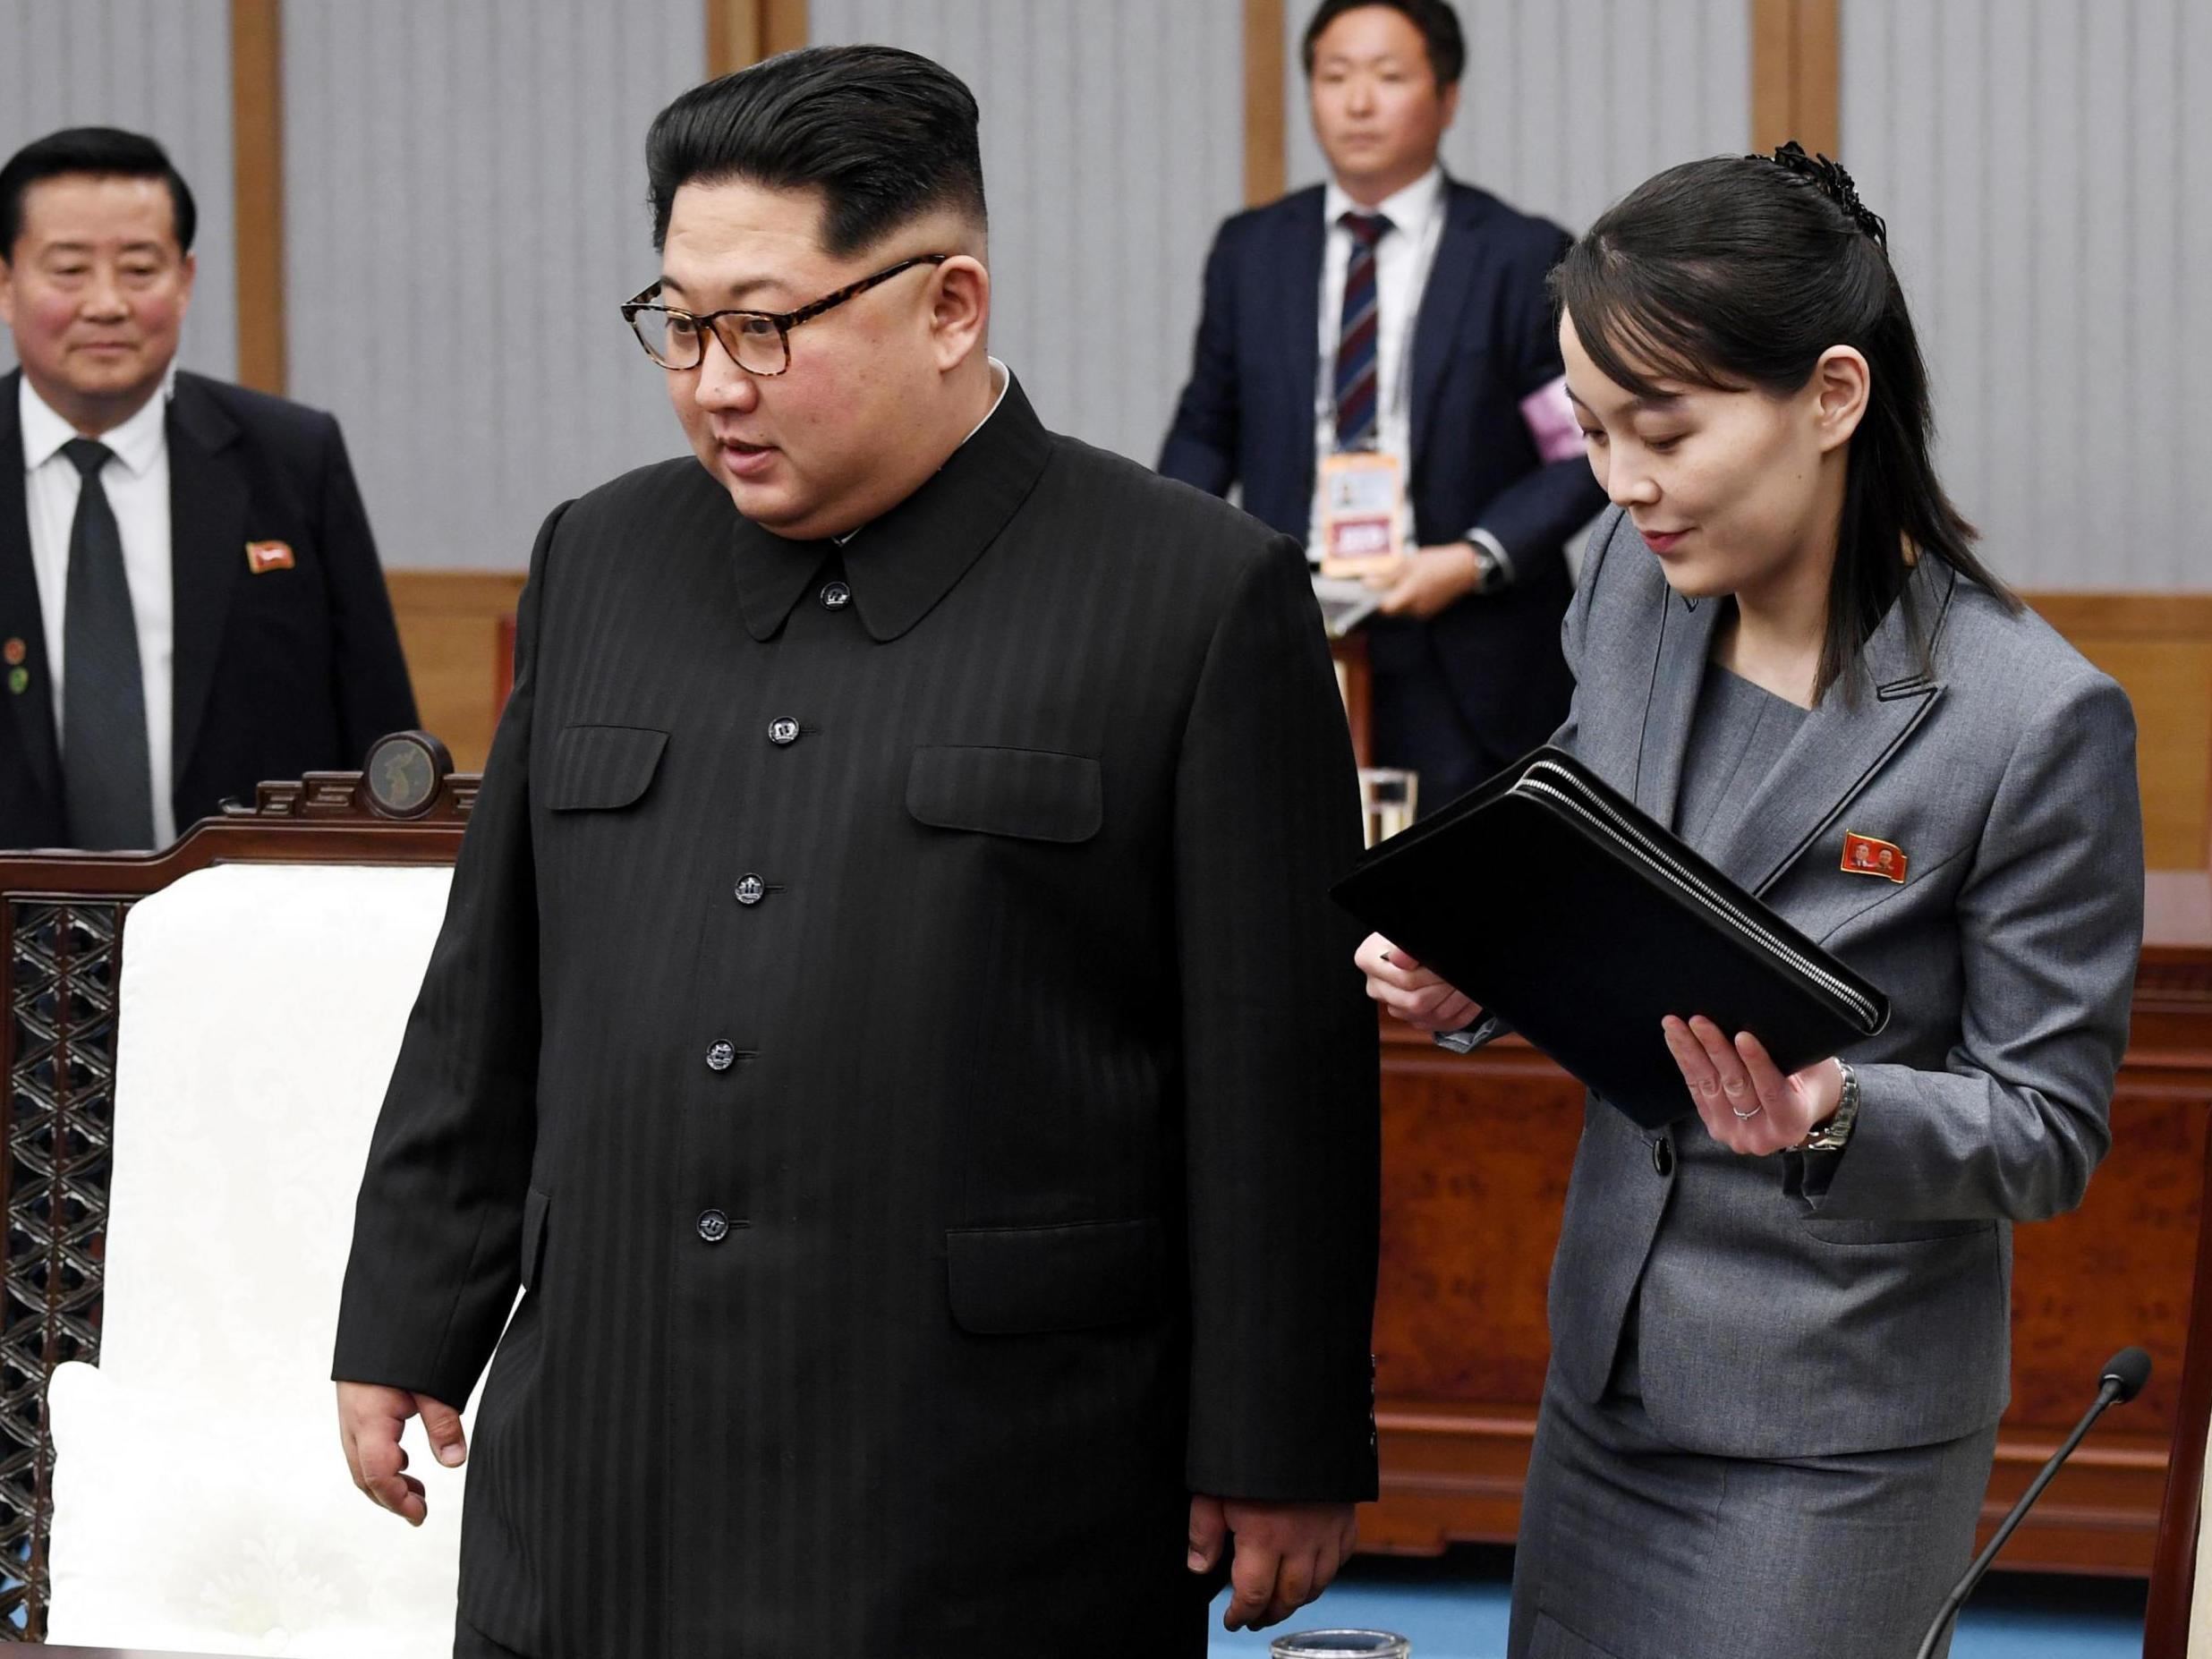 Kim Jong UN wanted to relieve stress and delegated authority to his younger sister